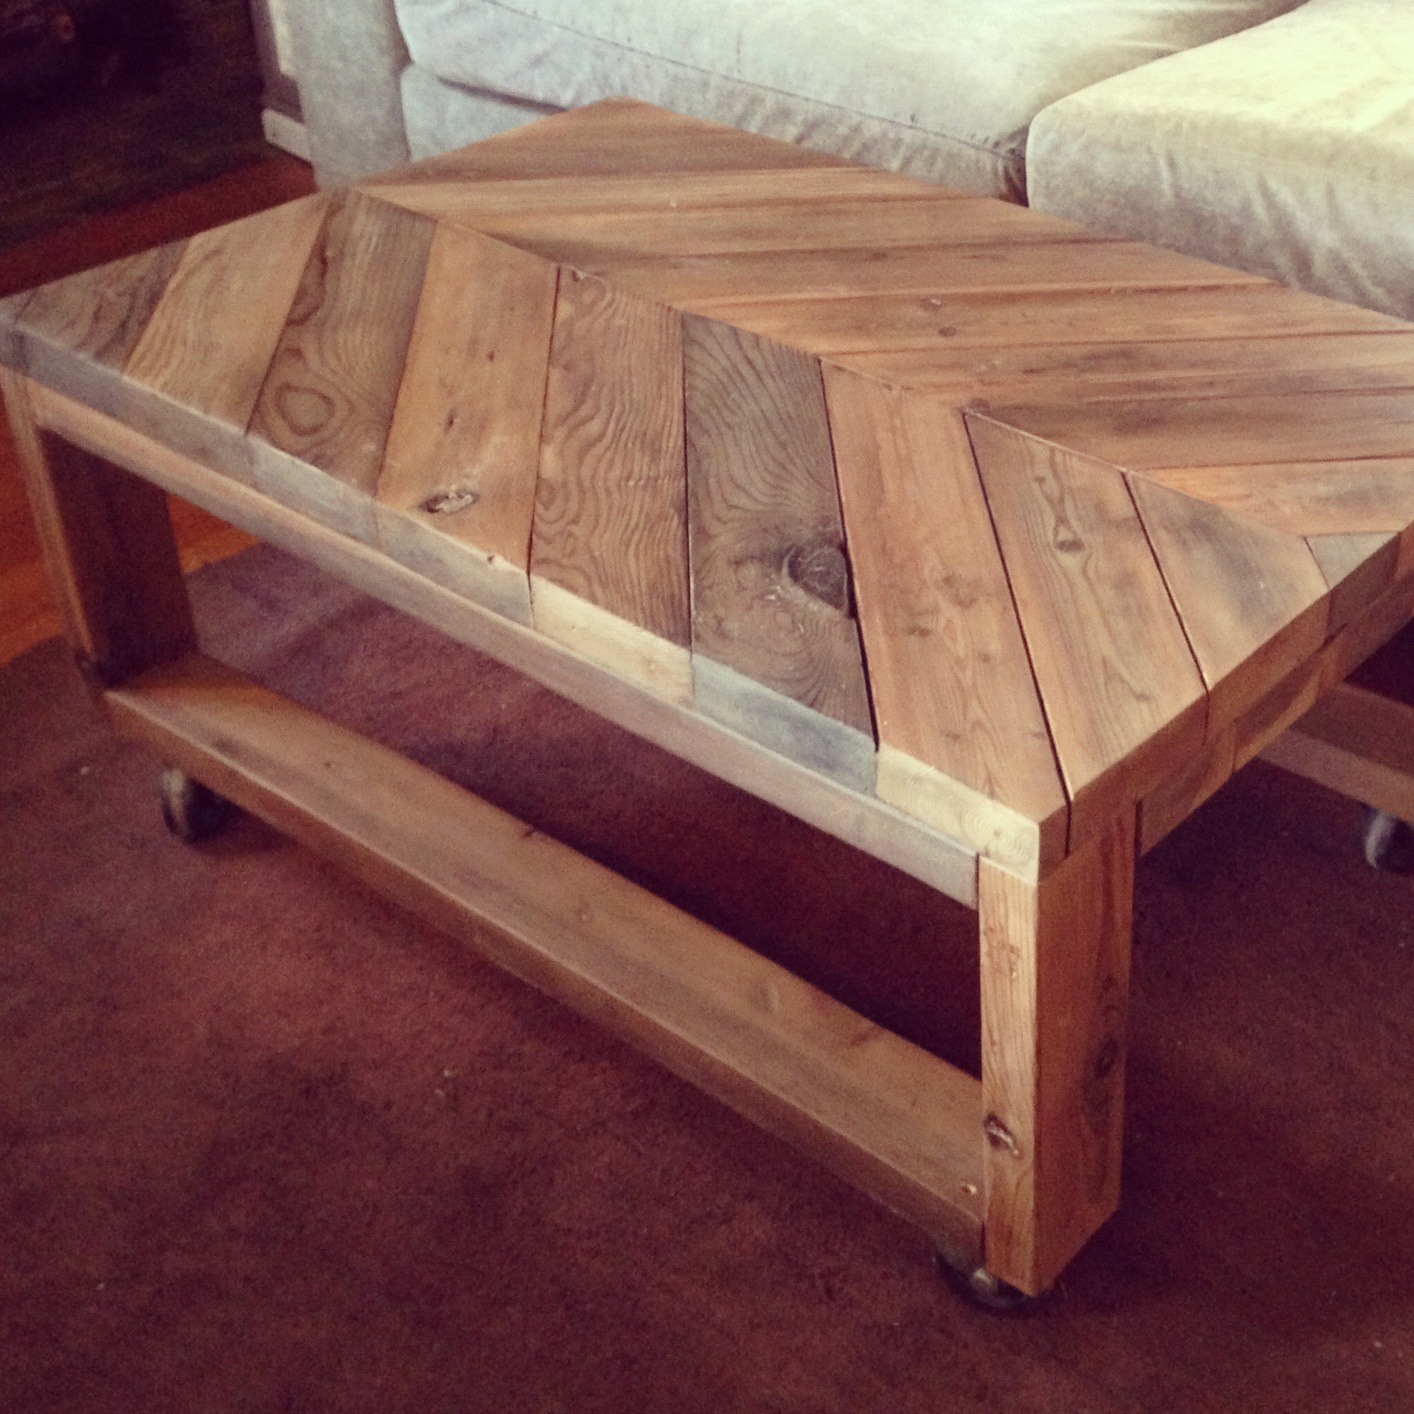 Simplycozyrestoration chic chevron coffee table from scratch for How to build a wooden table from scratch